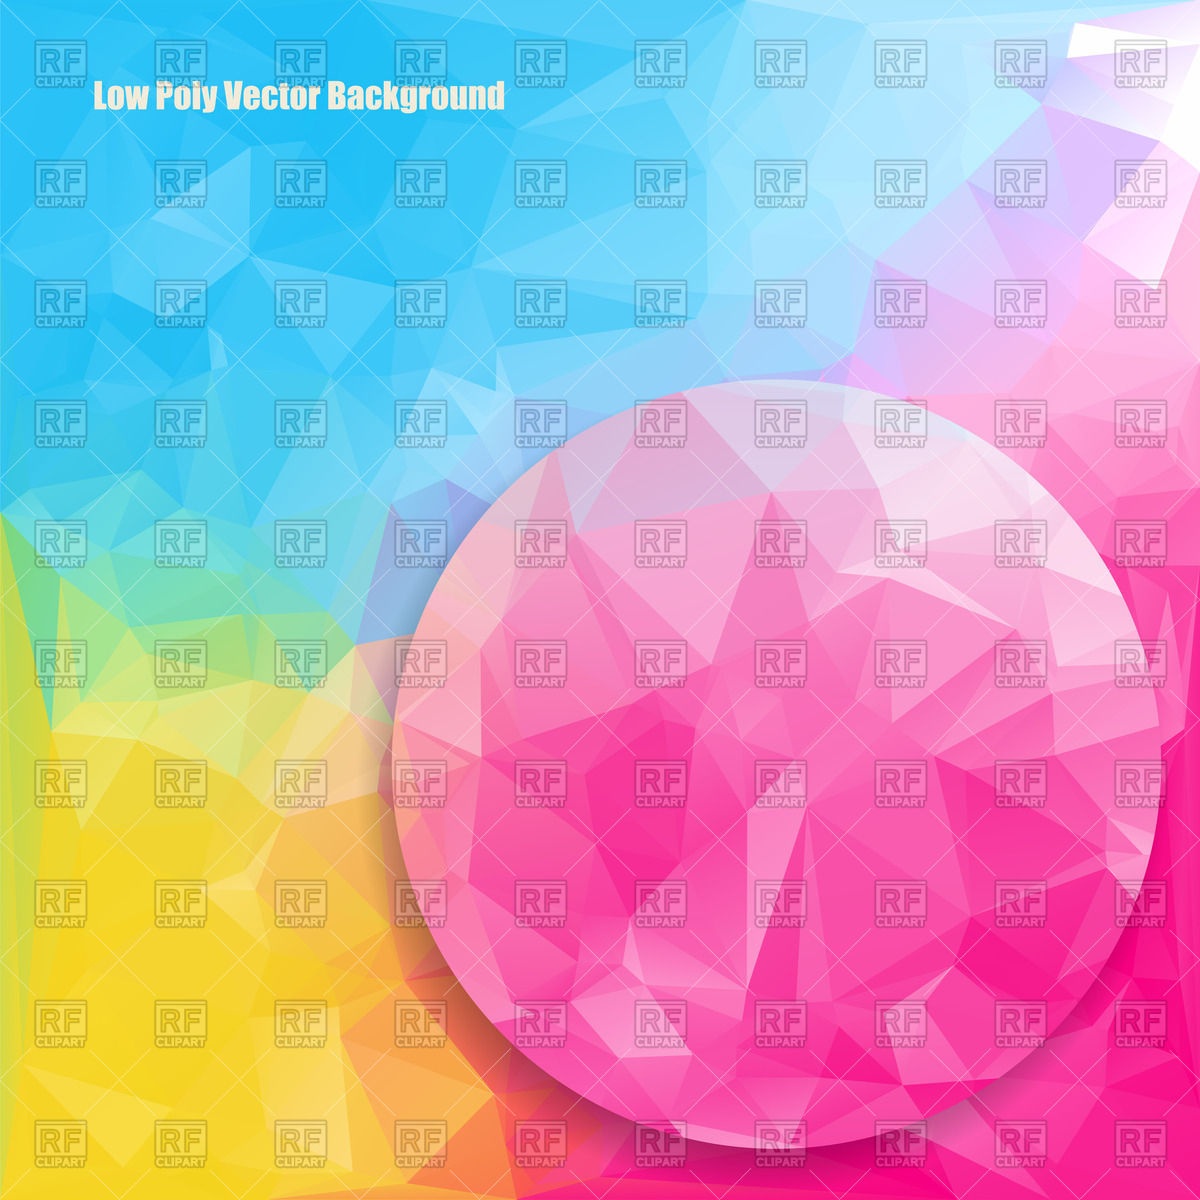 Low polygonal bright color background Vector Image #136453.